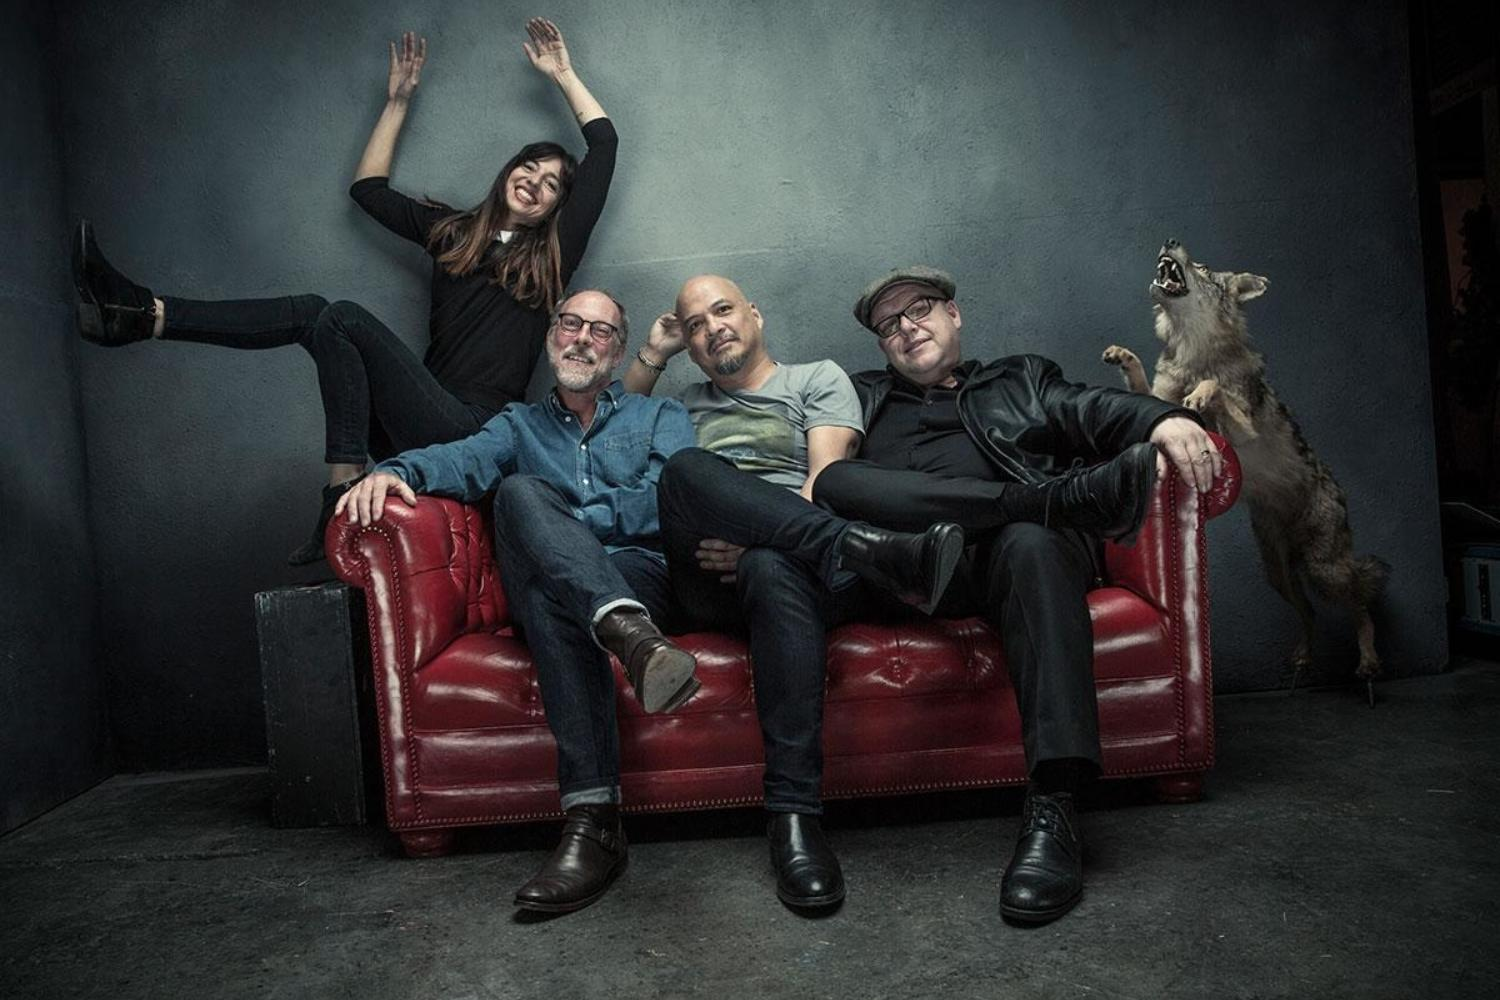 Pixies announce new album 'Beneath The Eyrie'